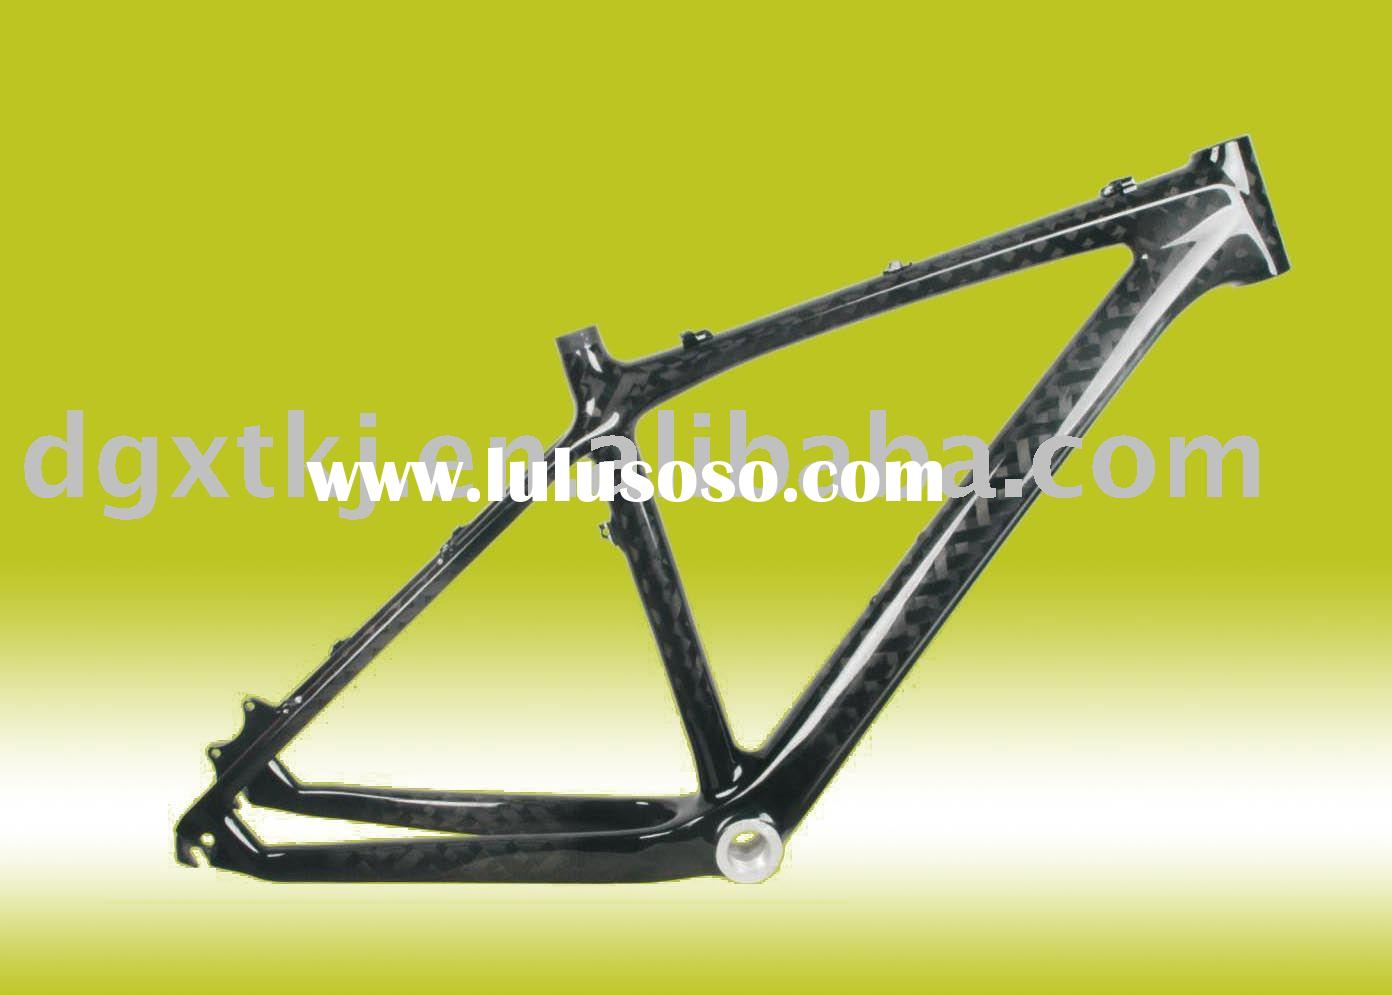 MTB carbon fiber frame,carbon bicycle frame,carbon mountain frame